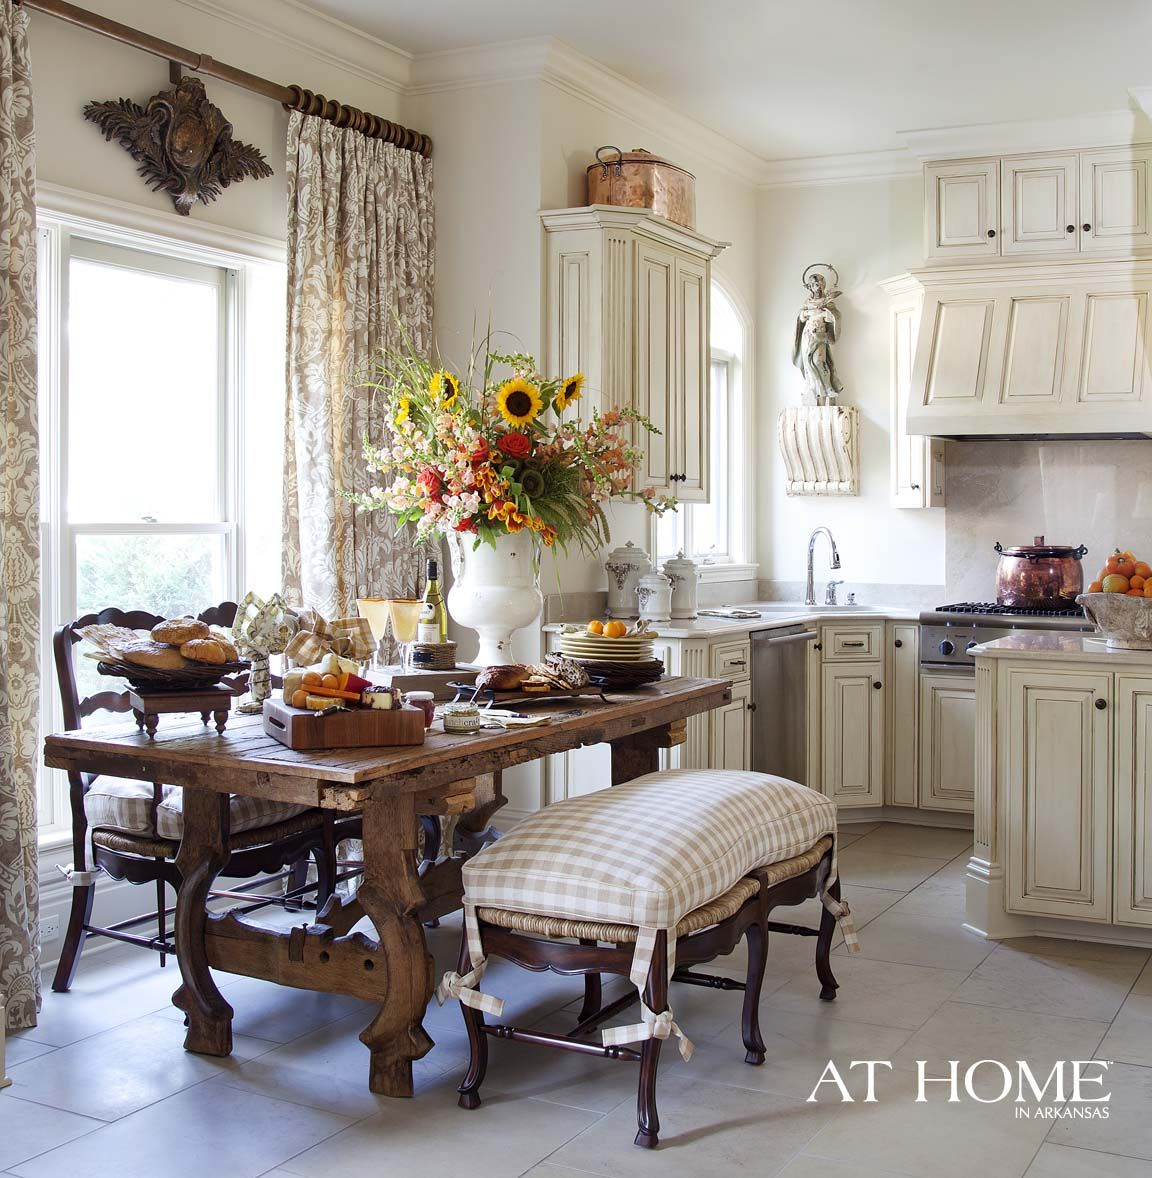 Country Kitchen Pictures 2019: Country Kitchen Designs